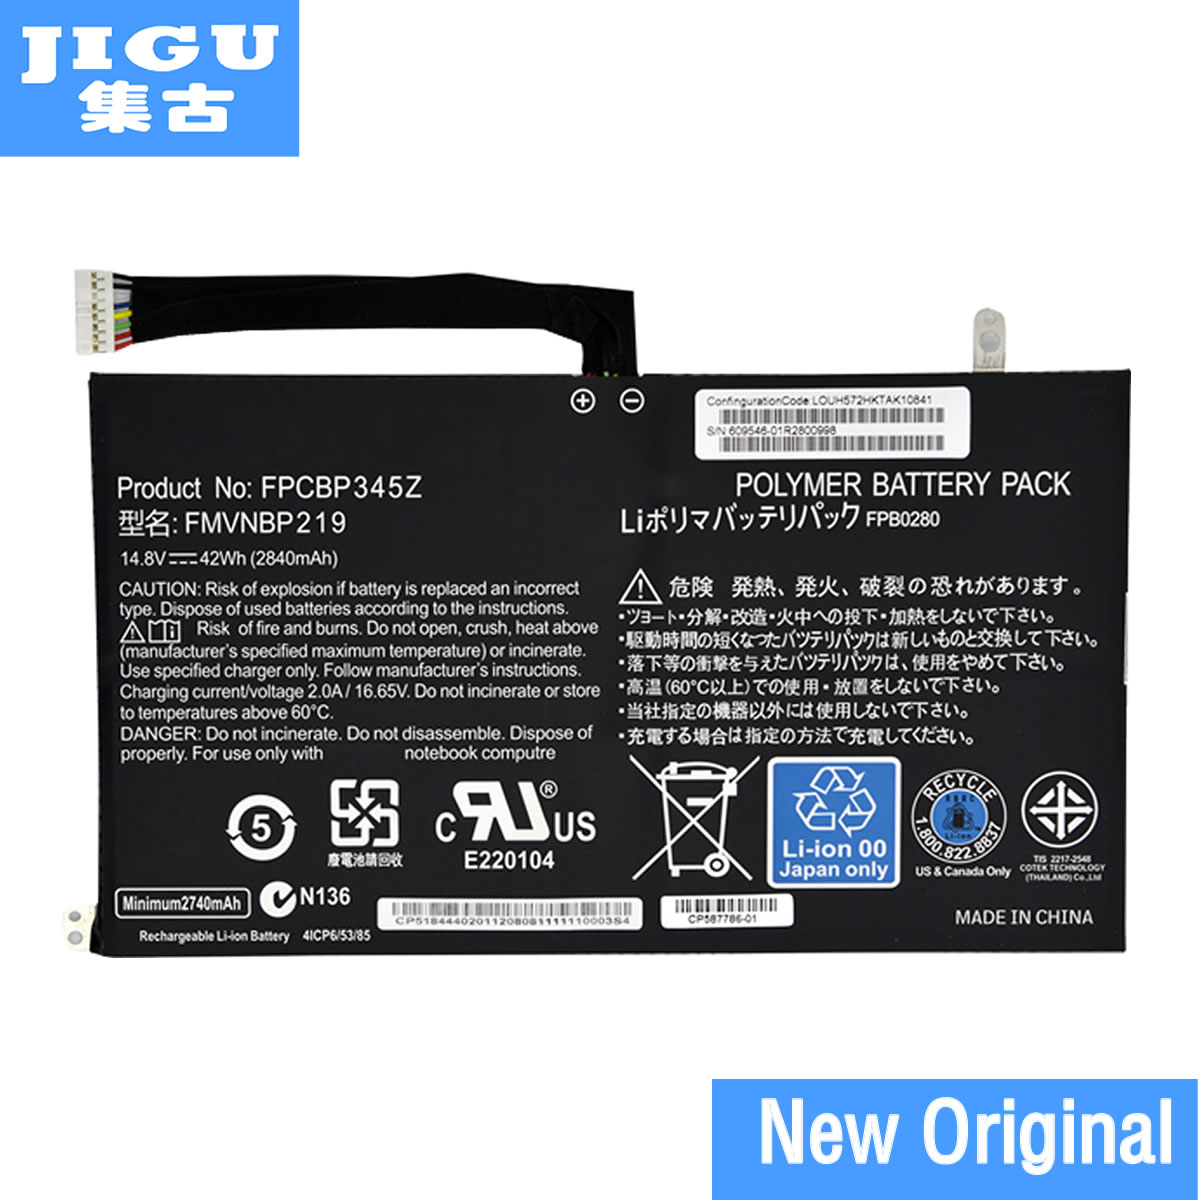 JIGU Original FPCBP345Z Laptop Battery For Fujitsu LifeBook UH572 UH552 Ultrabook FMVNBP219 FPB0280 FPCBP345Z 14.8V 2840mAh